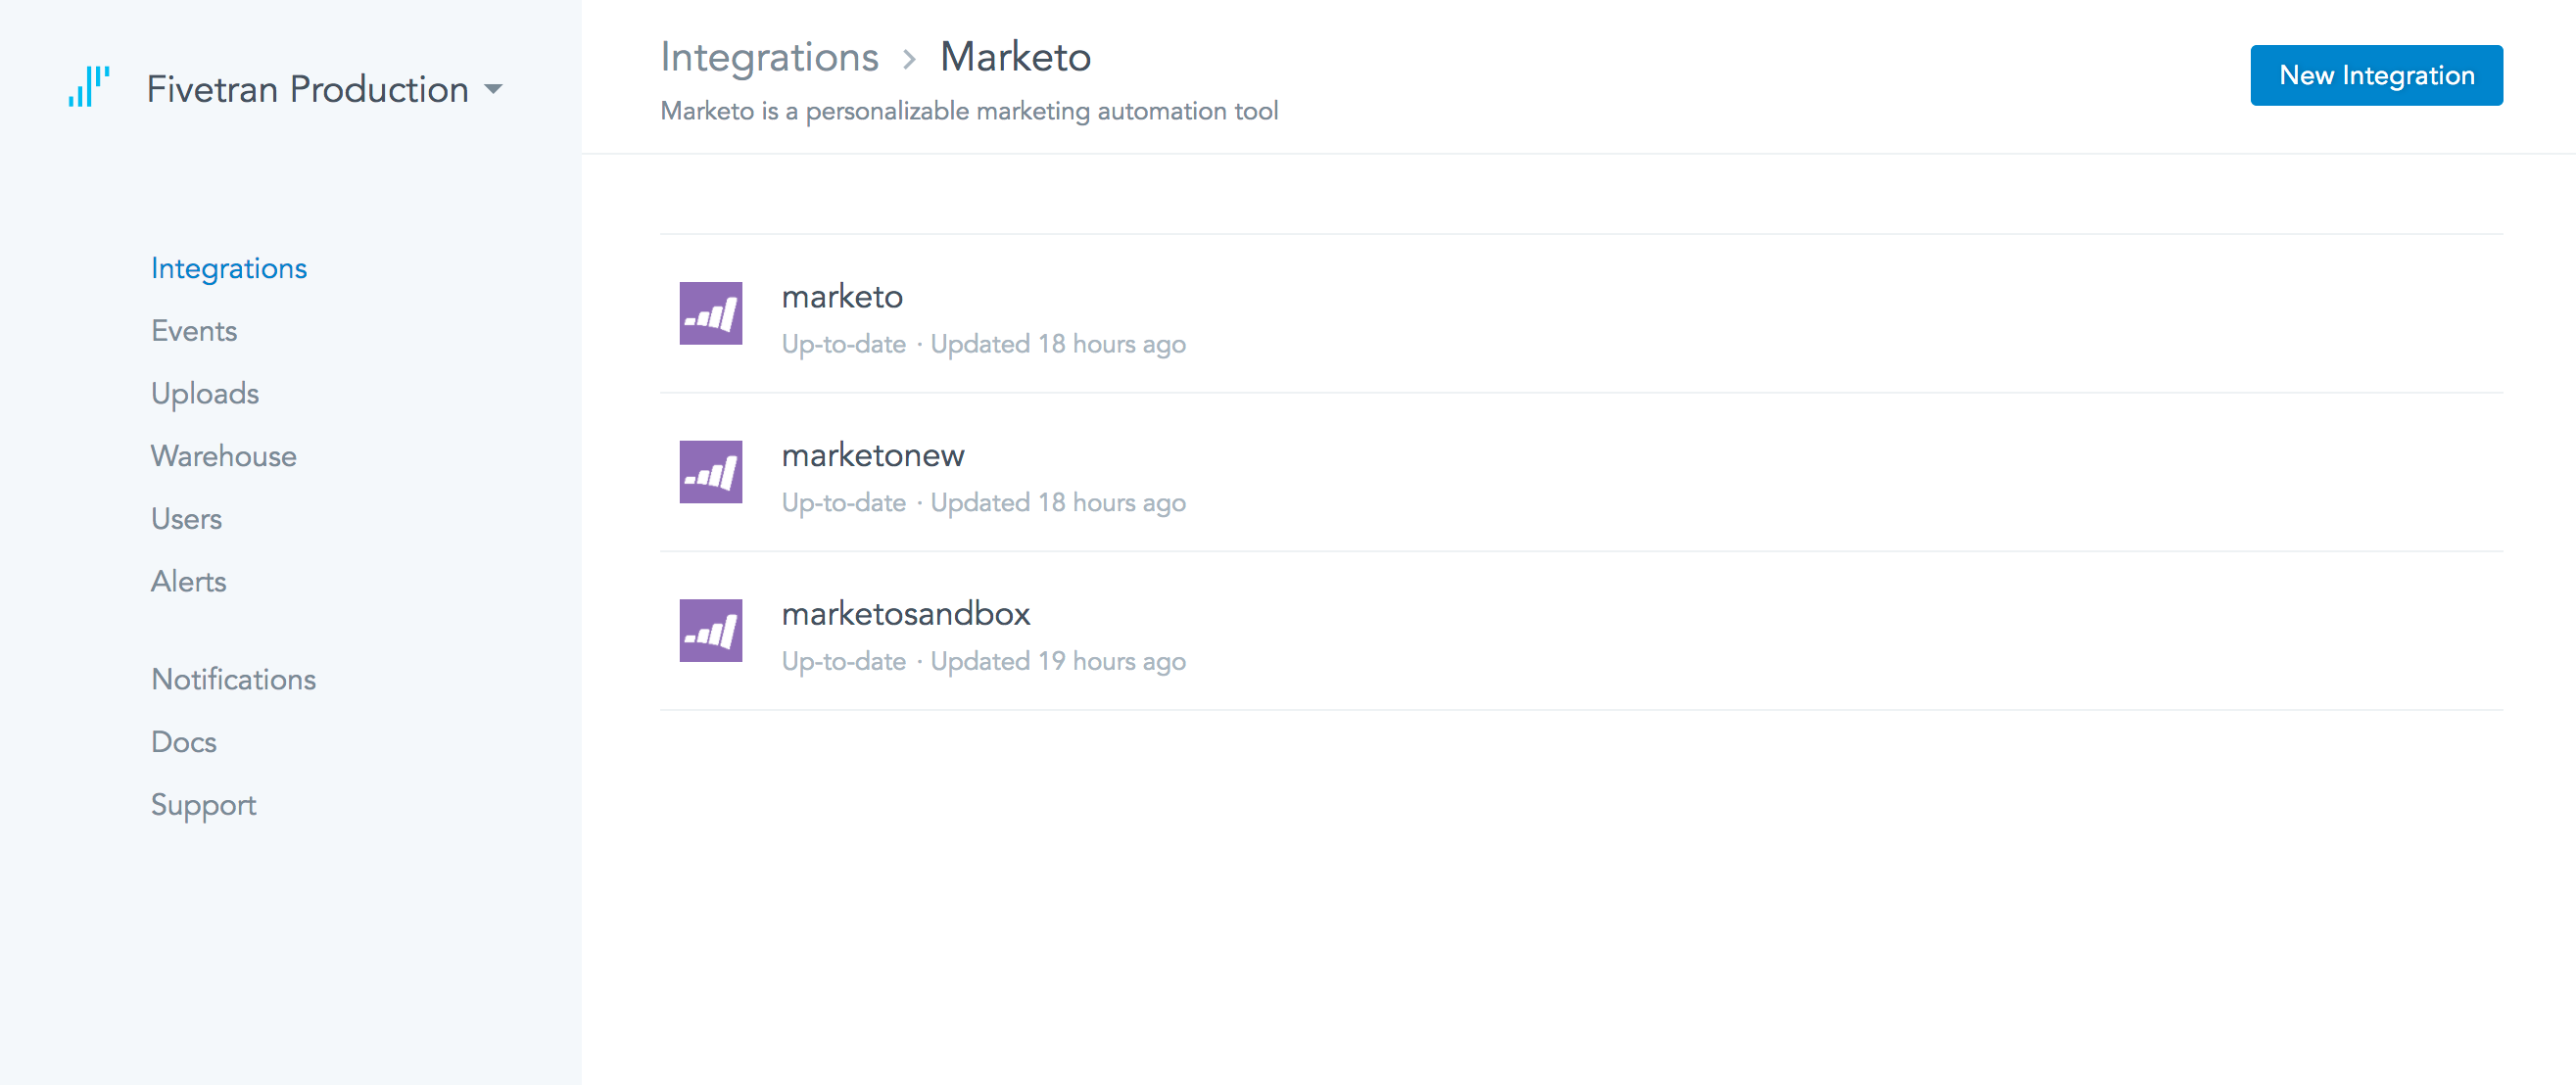 Users can add Marketo as a data connector and pull data in batch updates